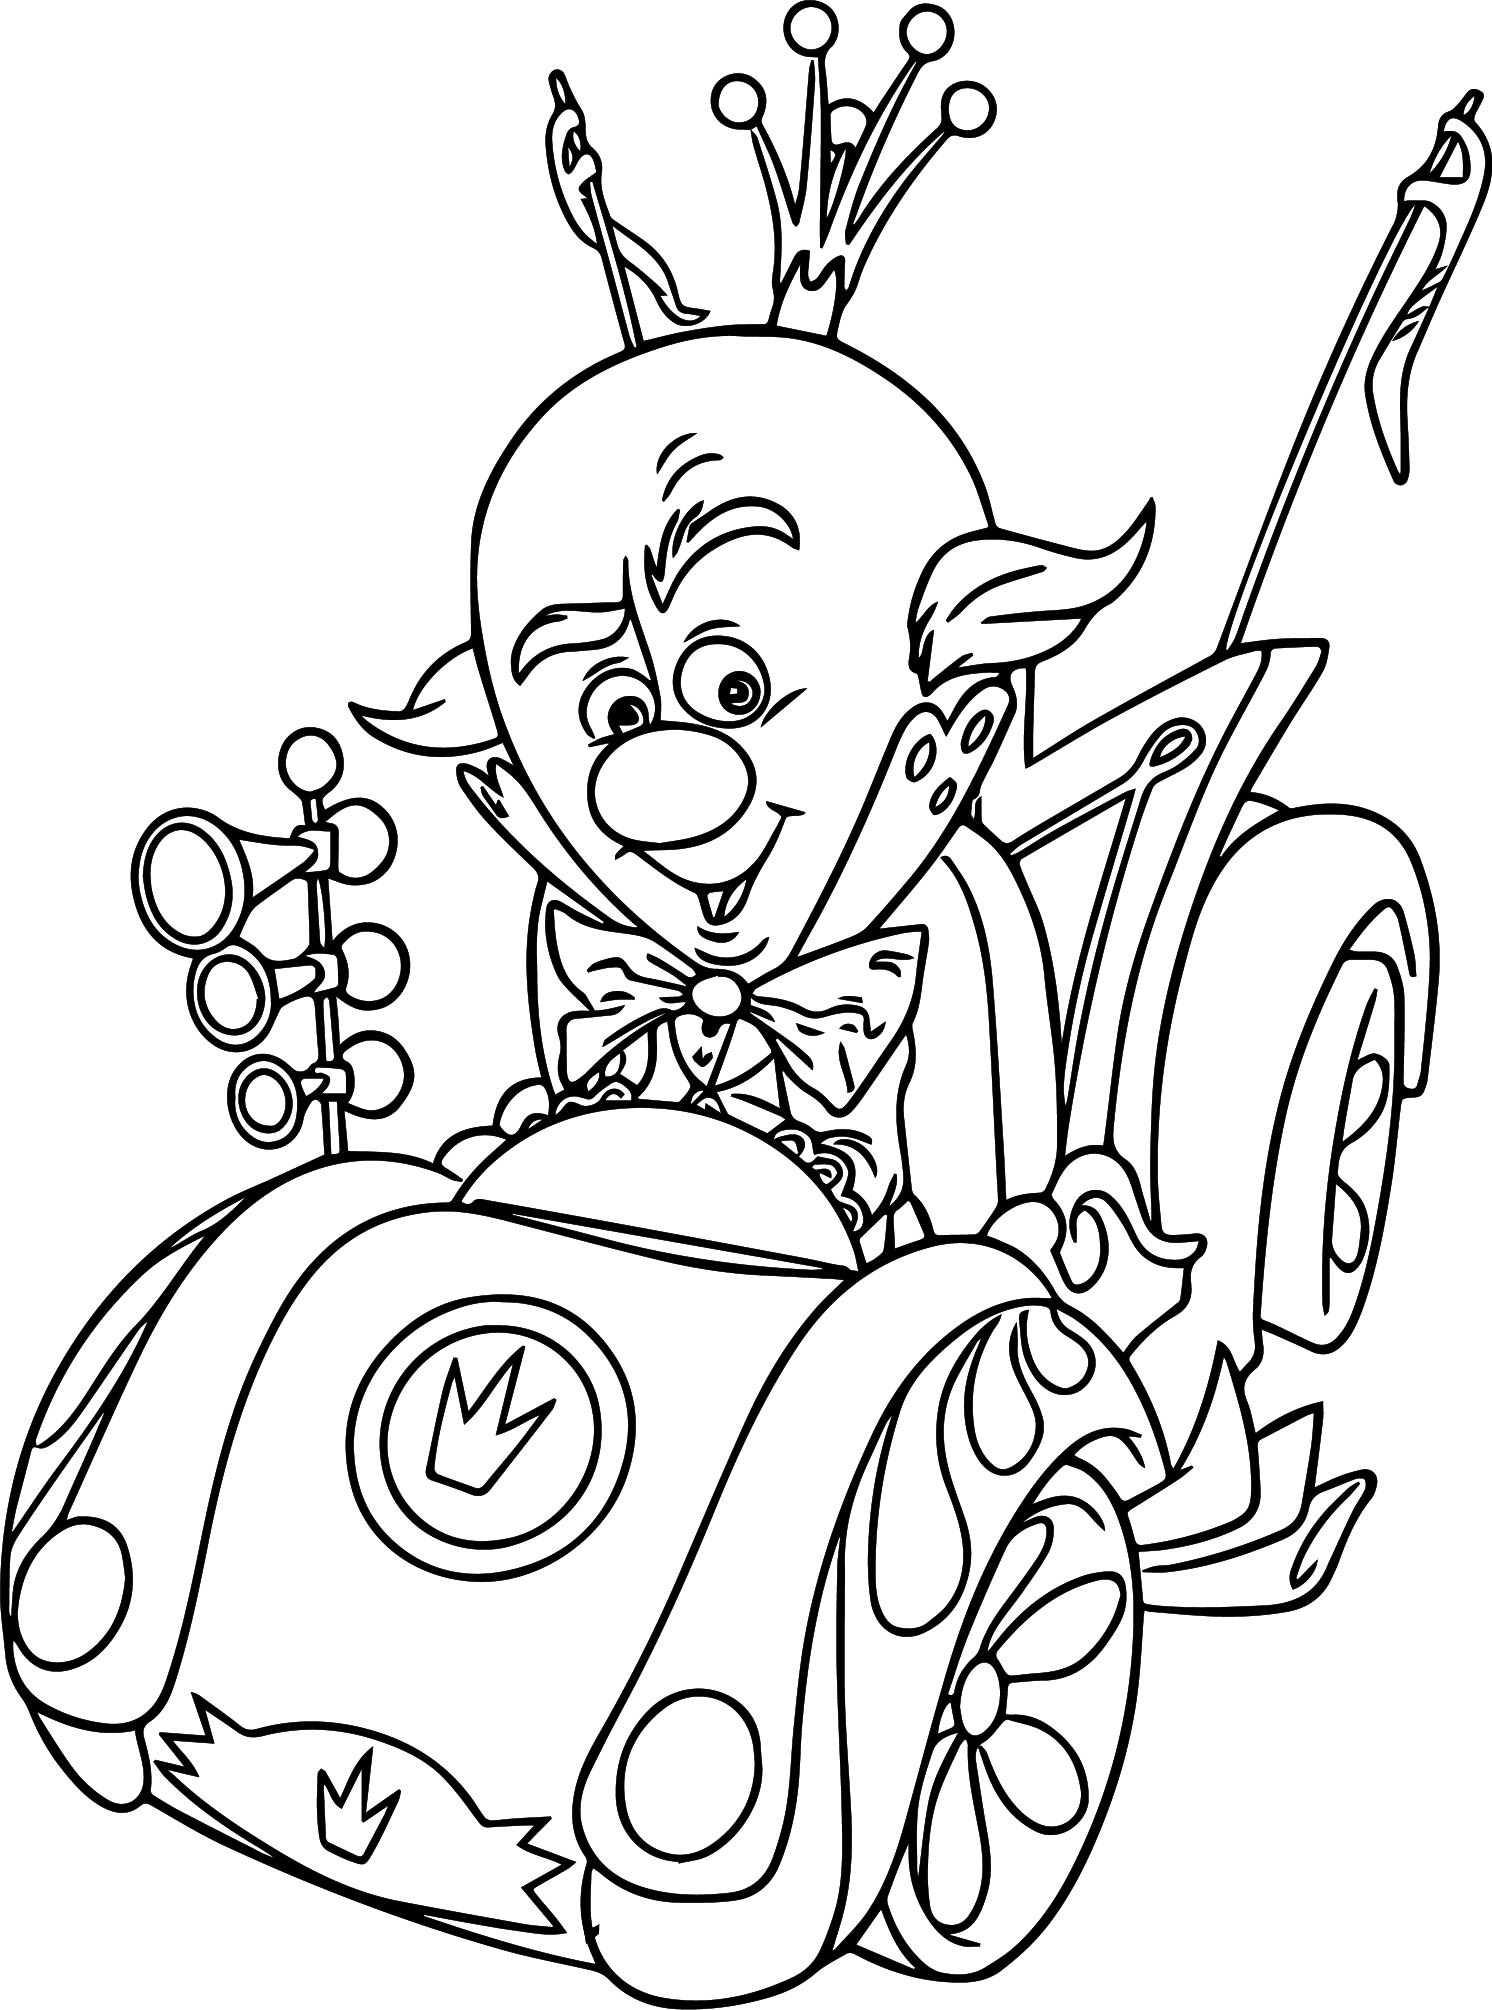 king candy car coloring page wecoloringpage